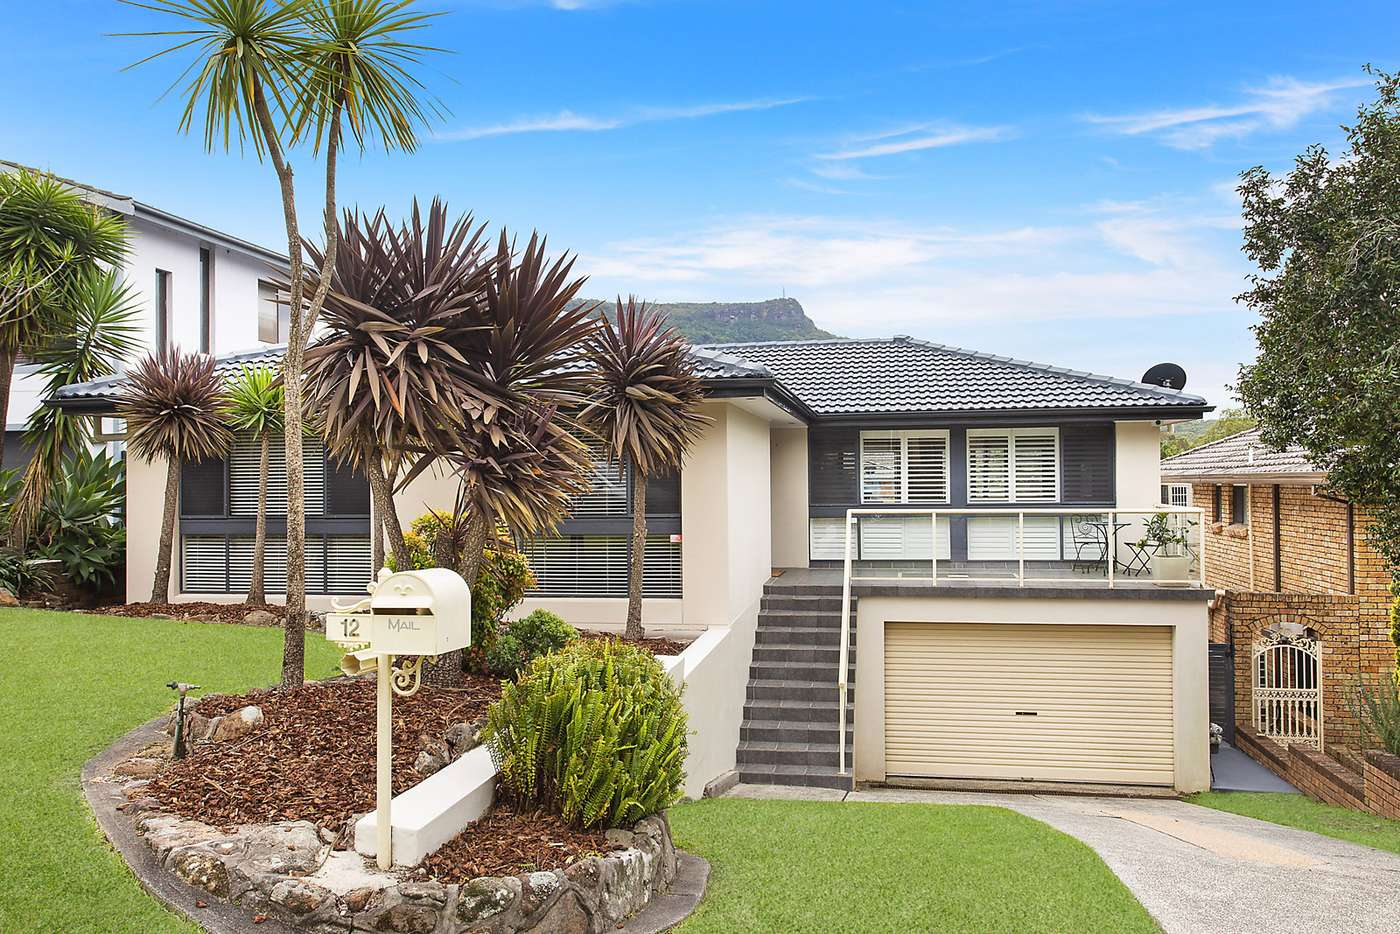 Main view of Homely house listing, 12 Blanchard Crescent, Balgownie NSW 2519